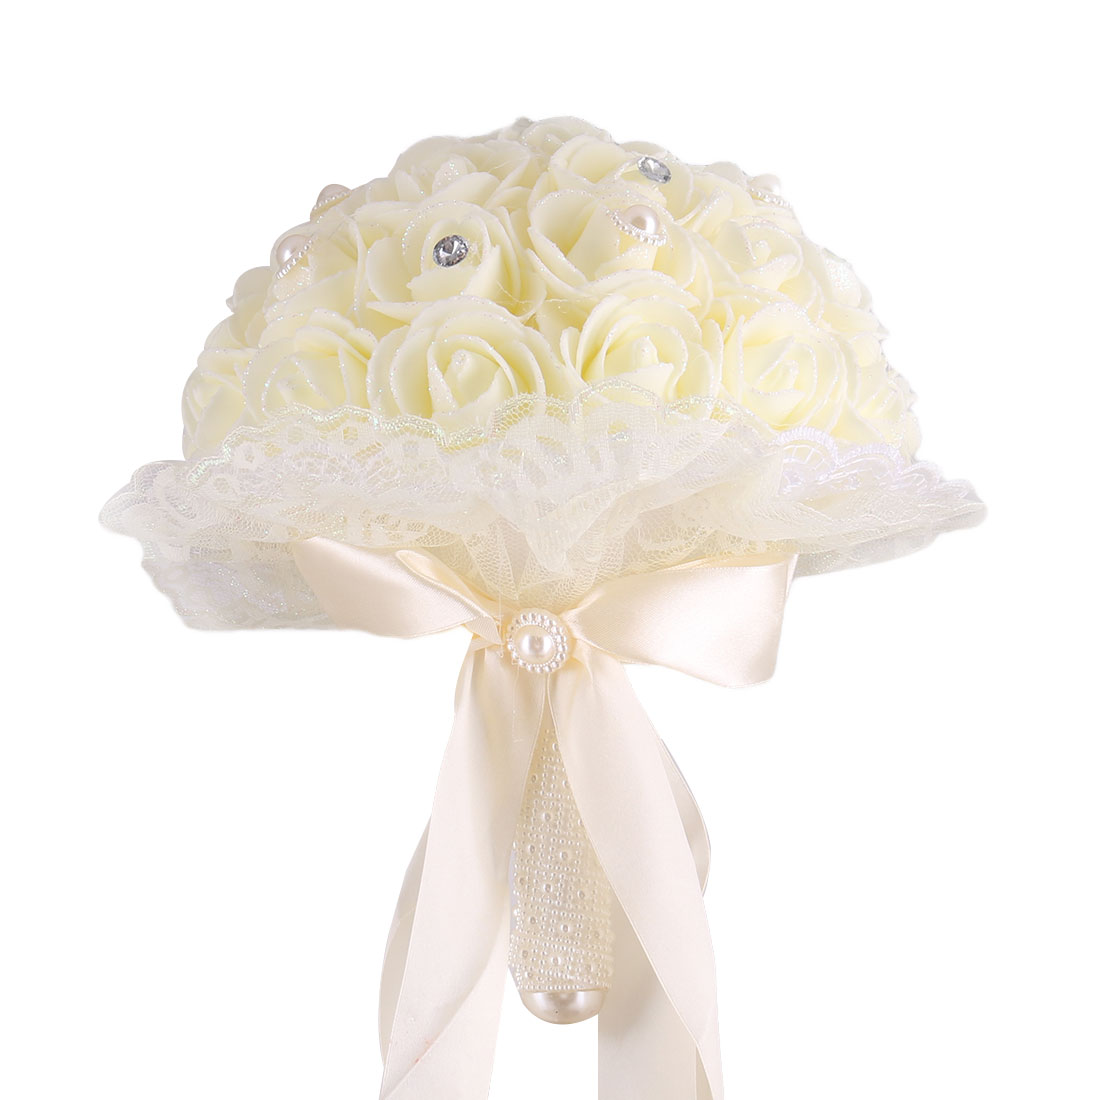 Wedding Banquet Foam Rose Buds Handhold Artificial Bouquet Craft Light Yellow 9 Inch Dia